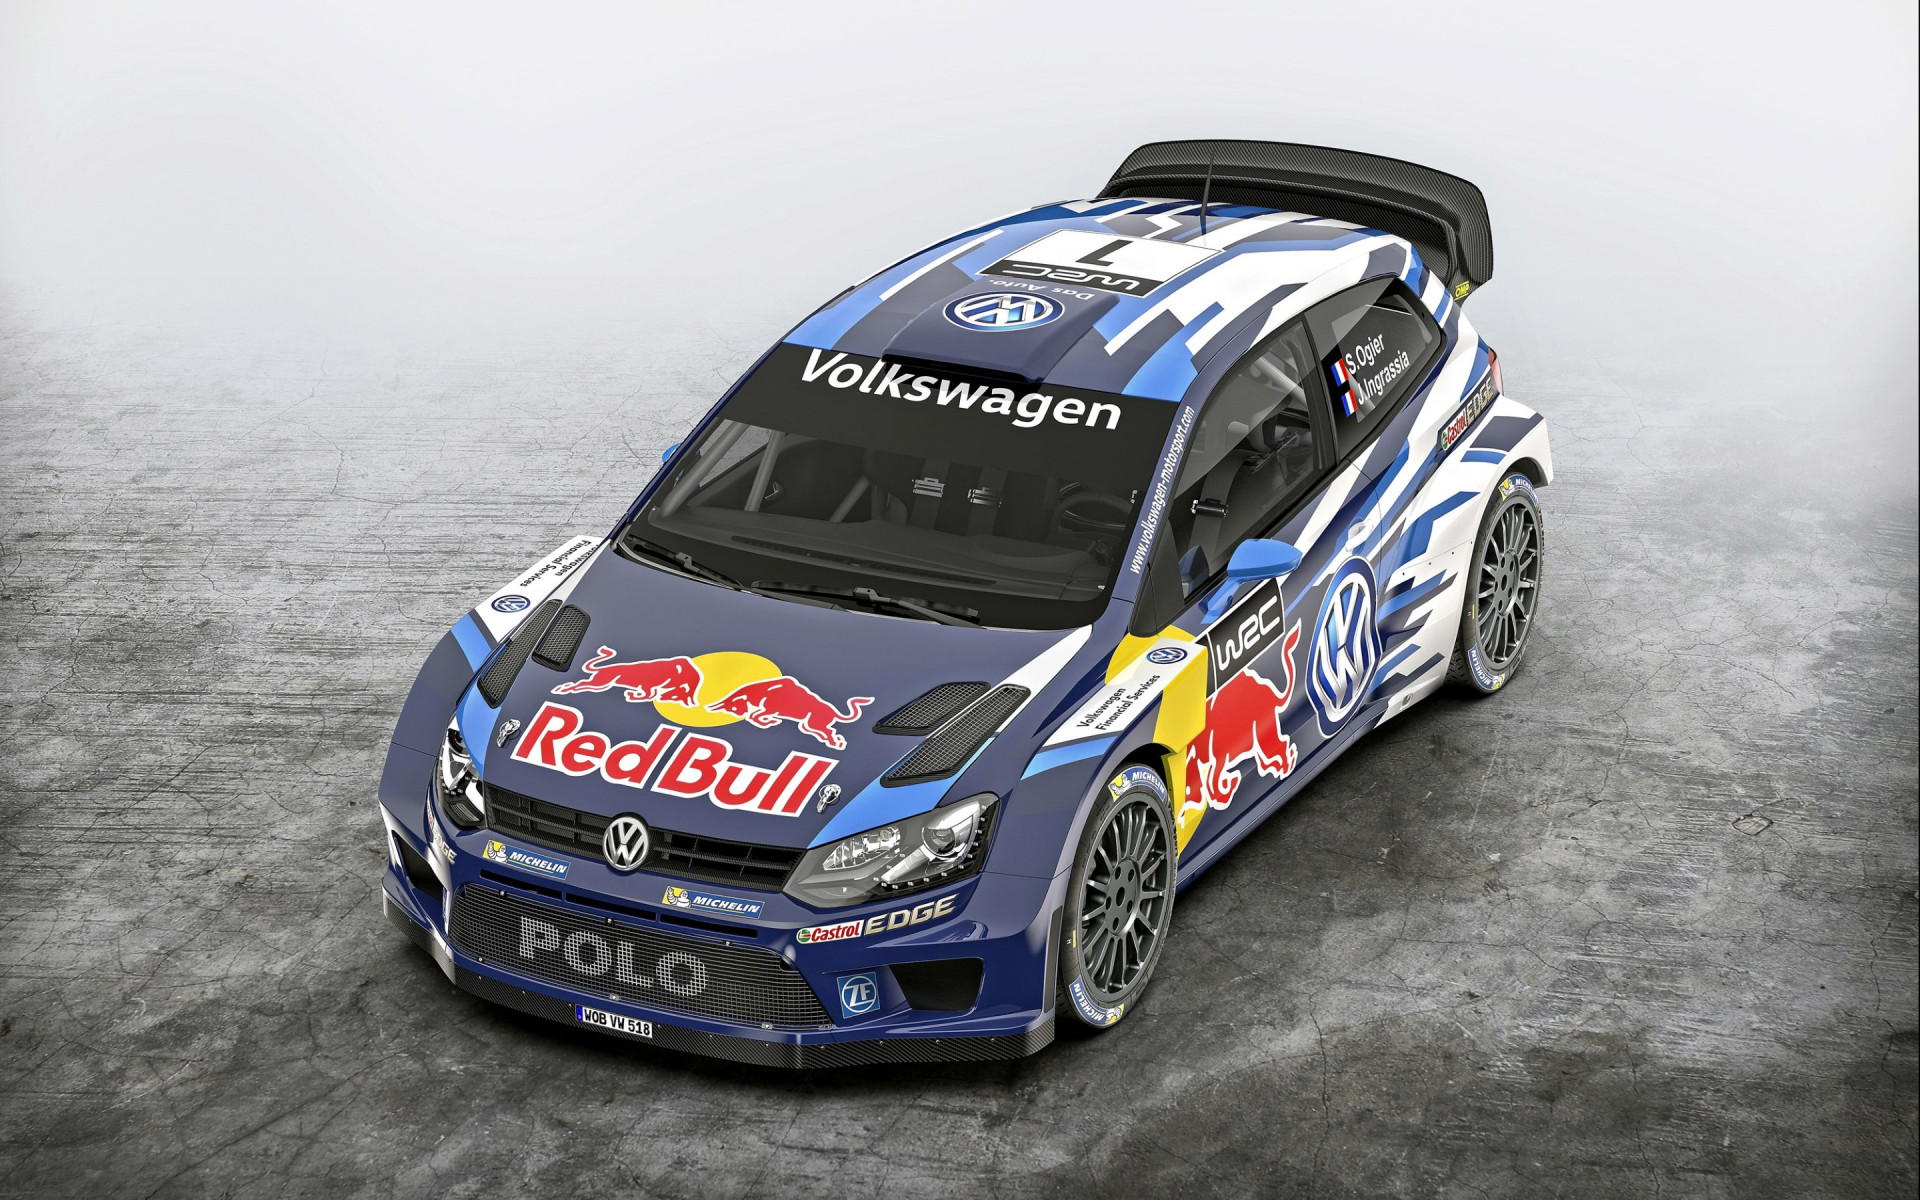 Volkswagen Polo R WRC wallpaper 1920x1200